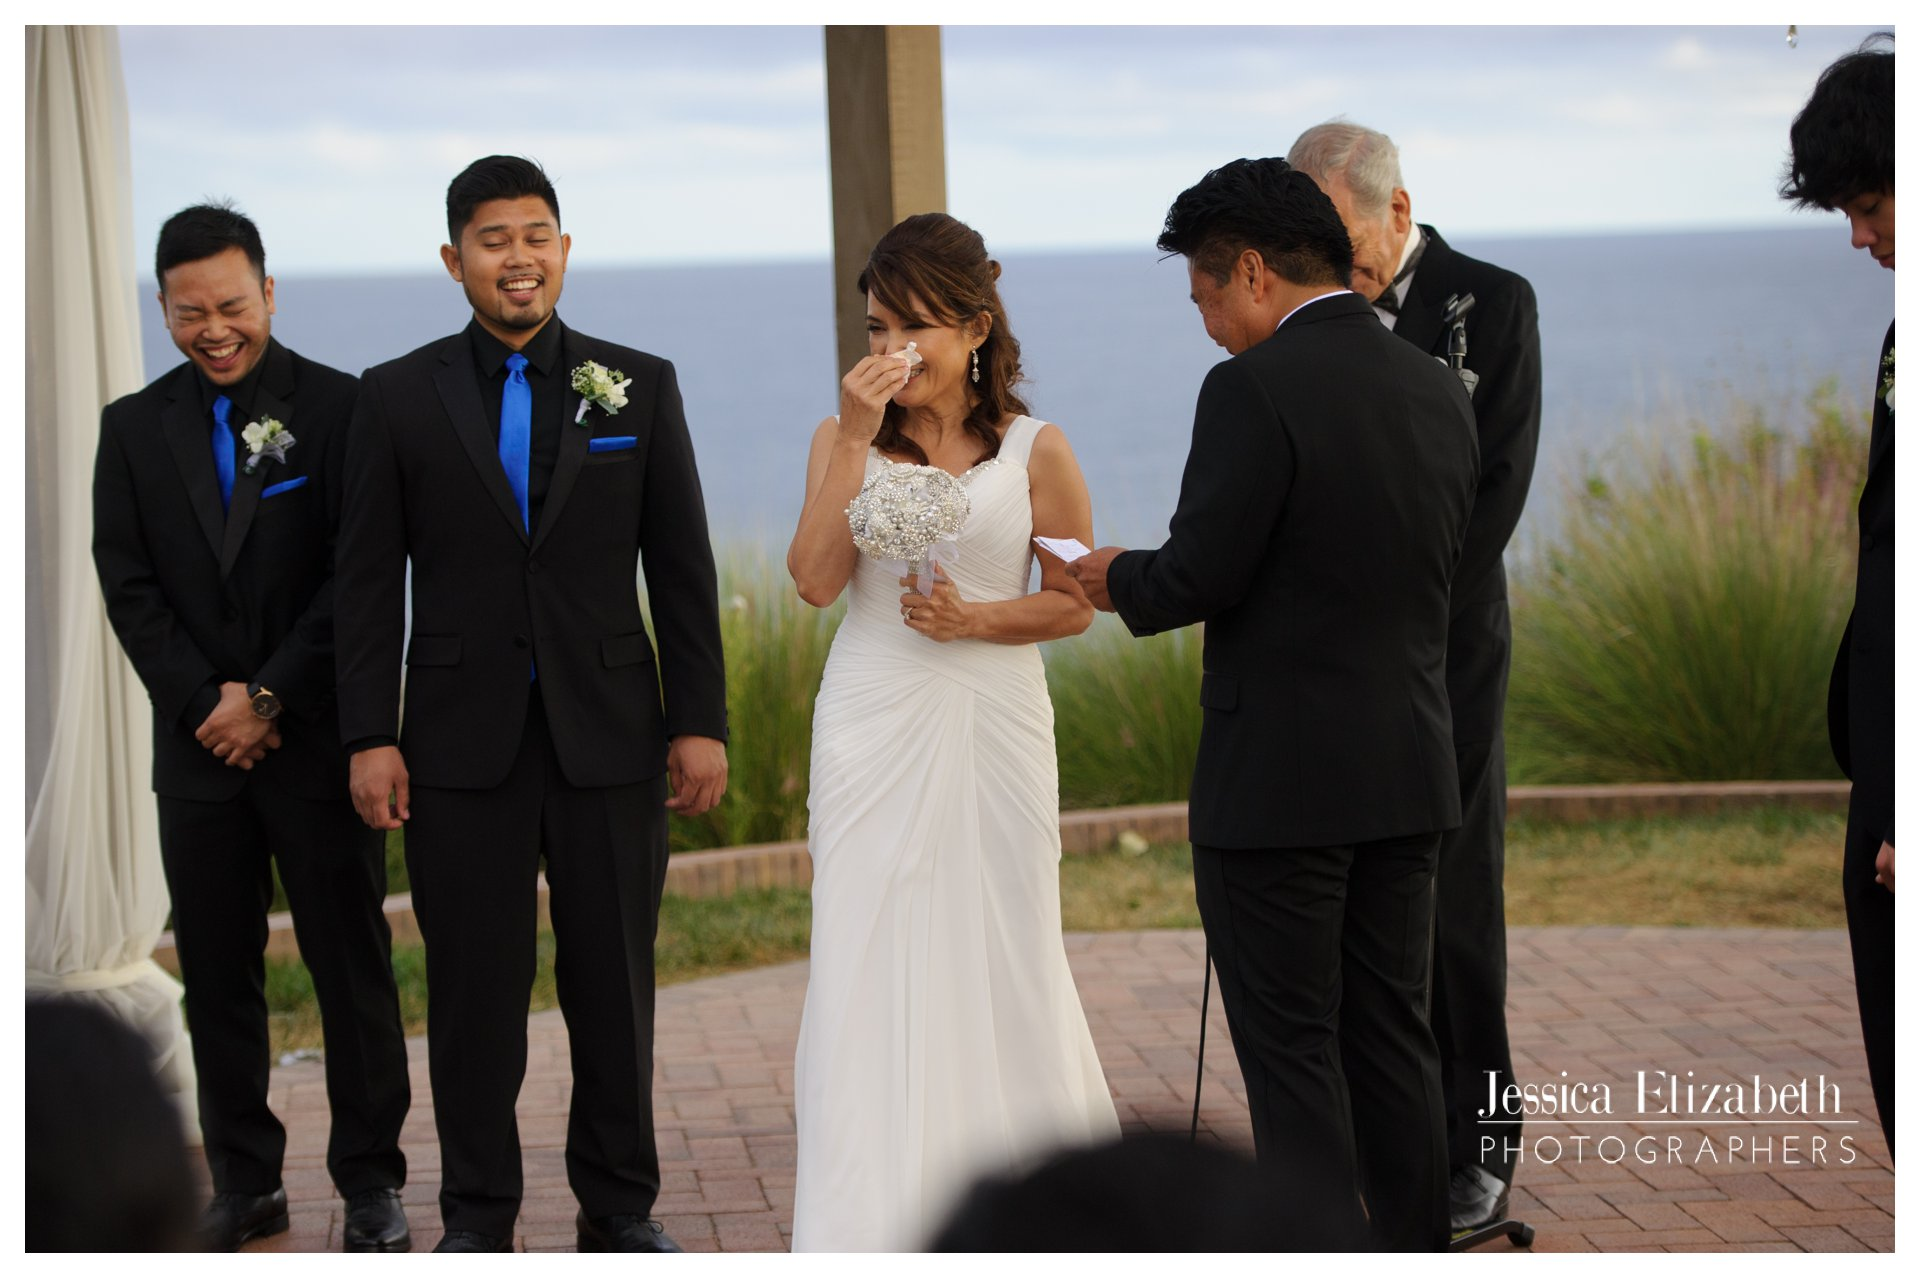 18-Terranea-Palos-Verdes-Wedding-Photography-by-Jessica-Elizabeth-w.jpg